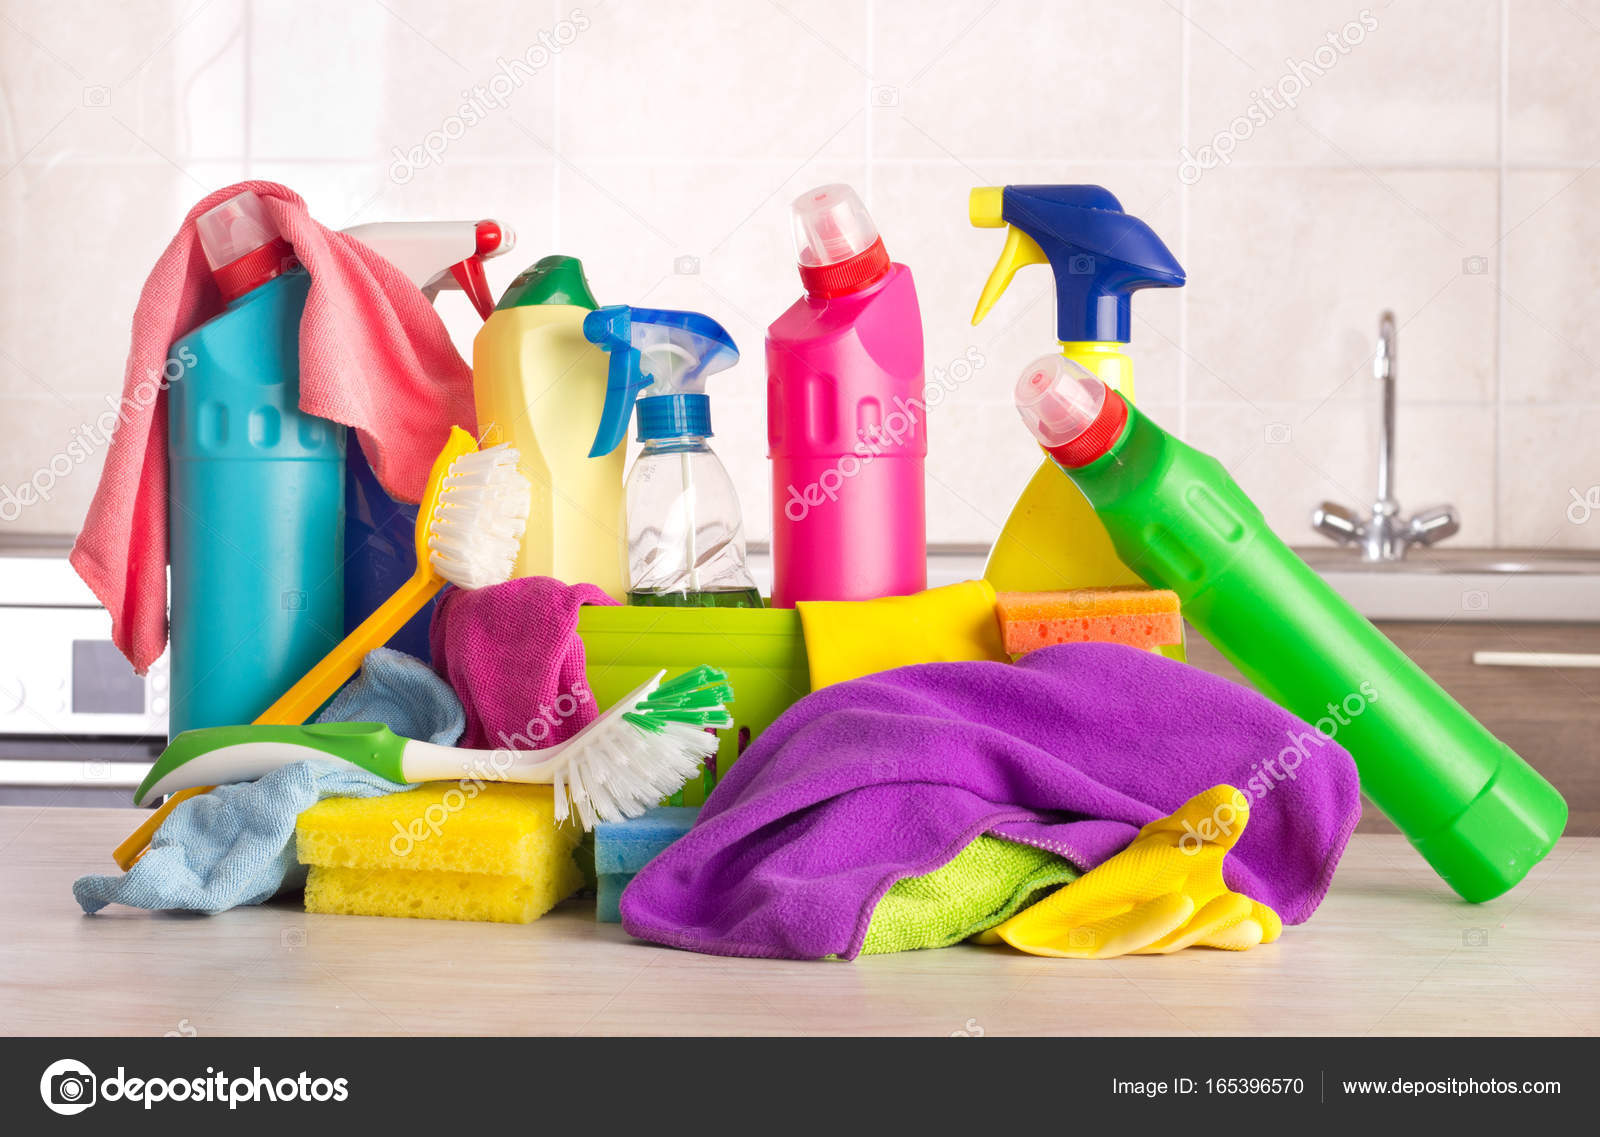 Cleaning Products On Kitchen Table U2014 Stock Photo